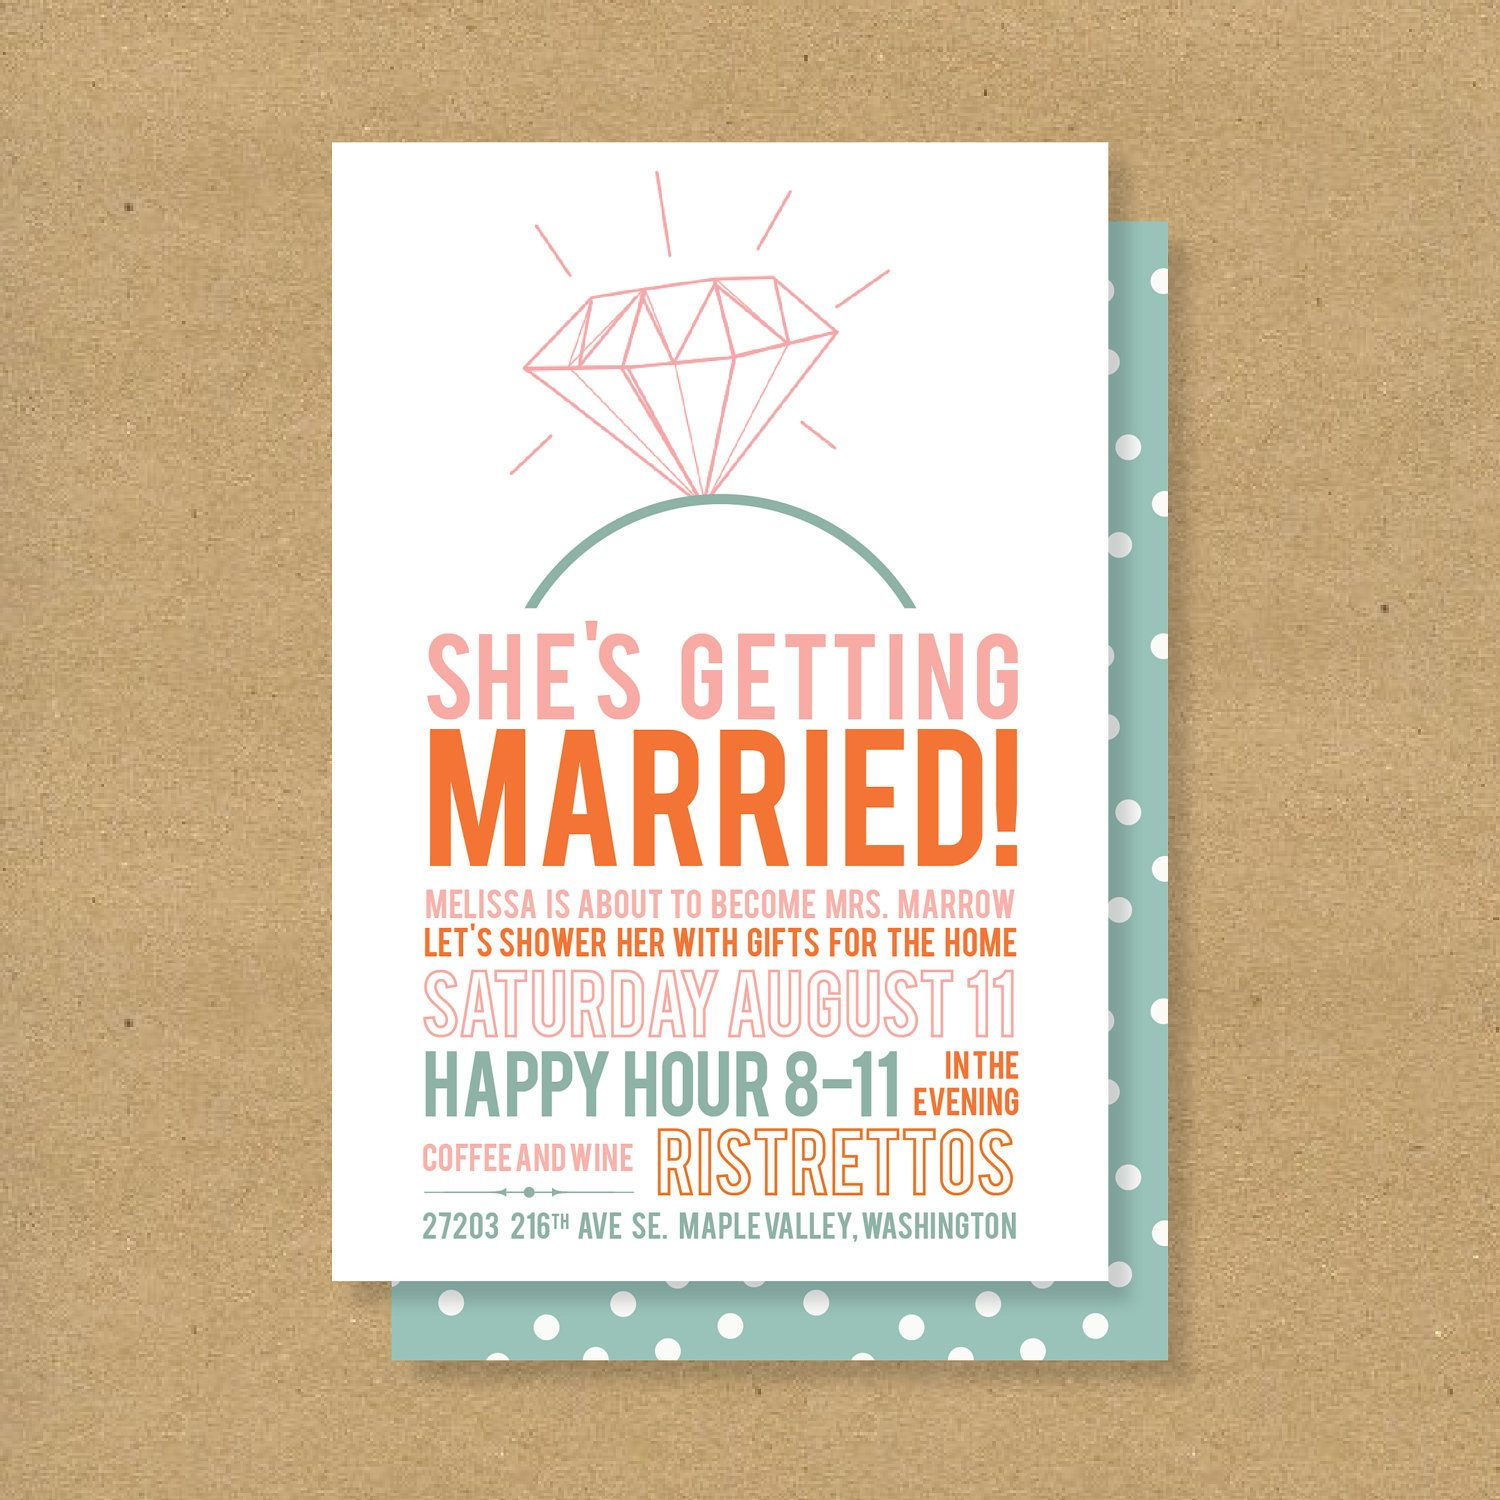 Bridal Shower Invitation Printable Diamonds $16 00 via Etsy